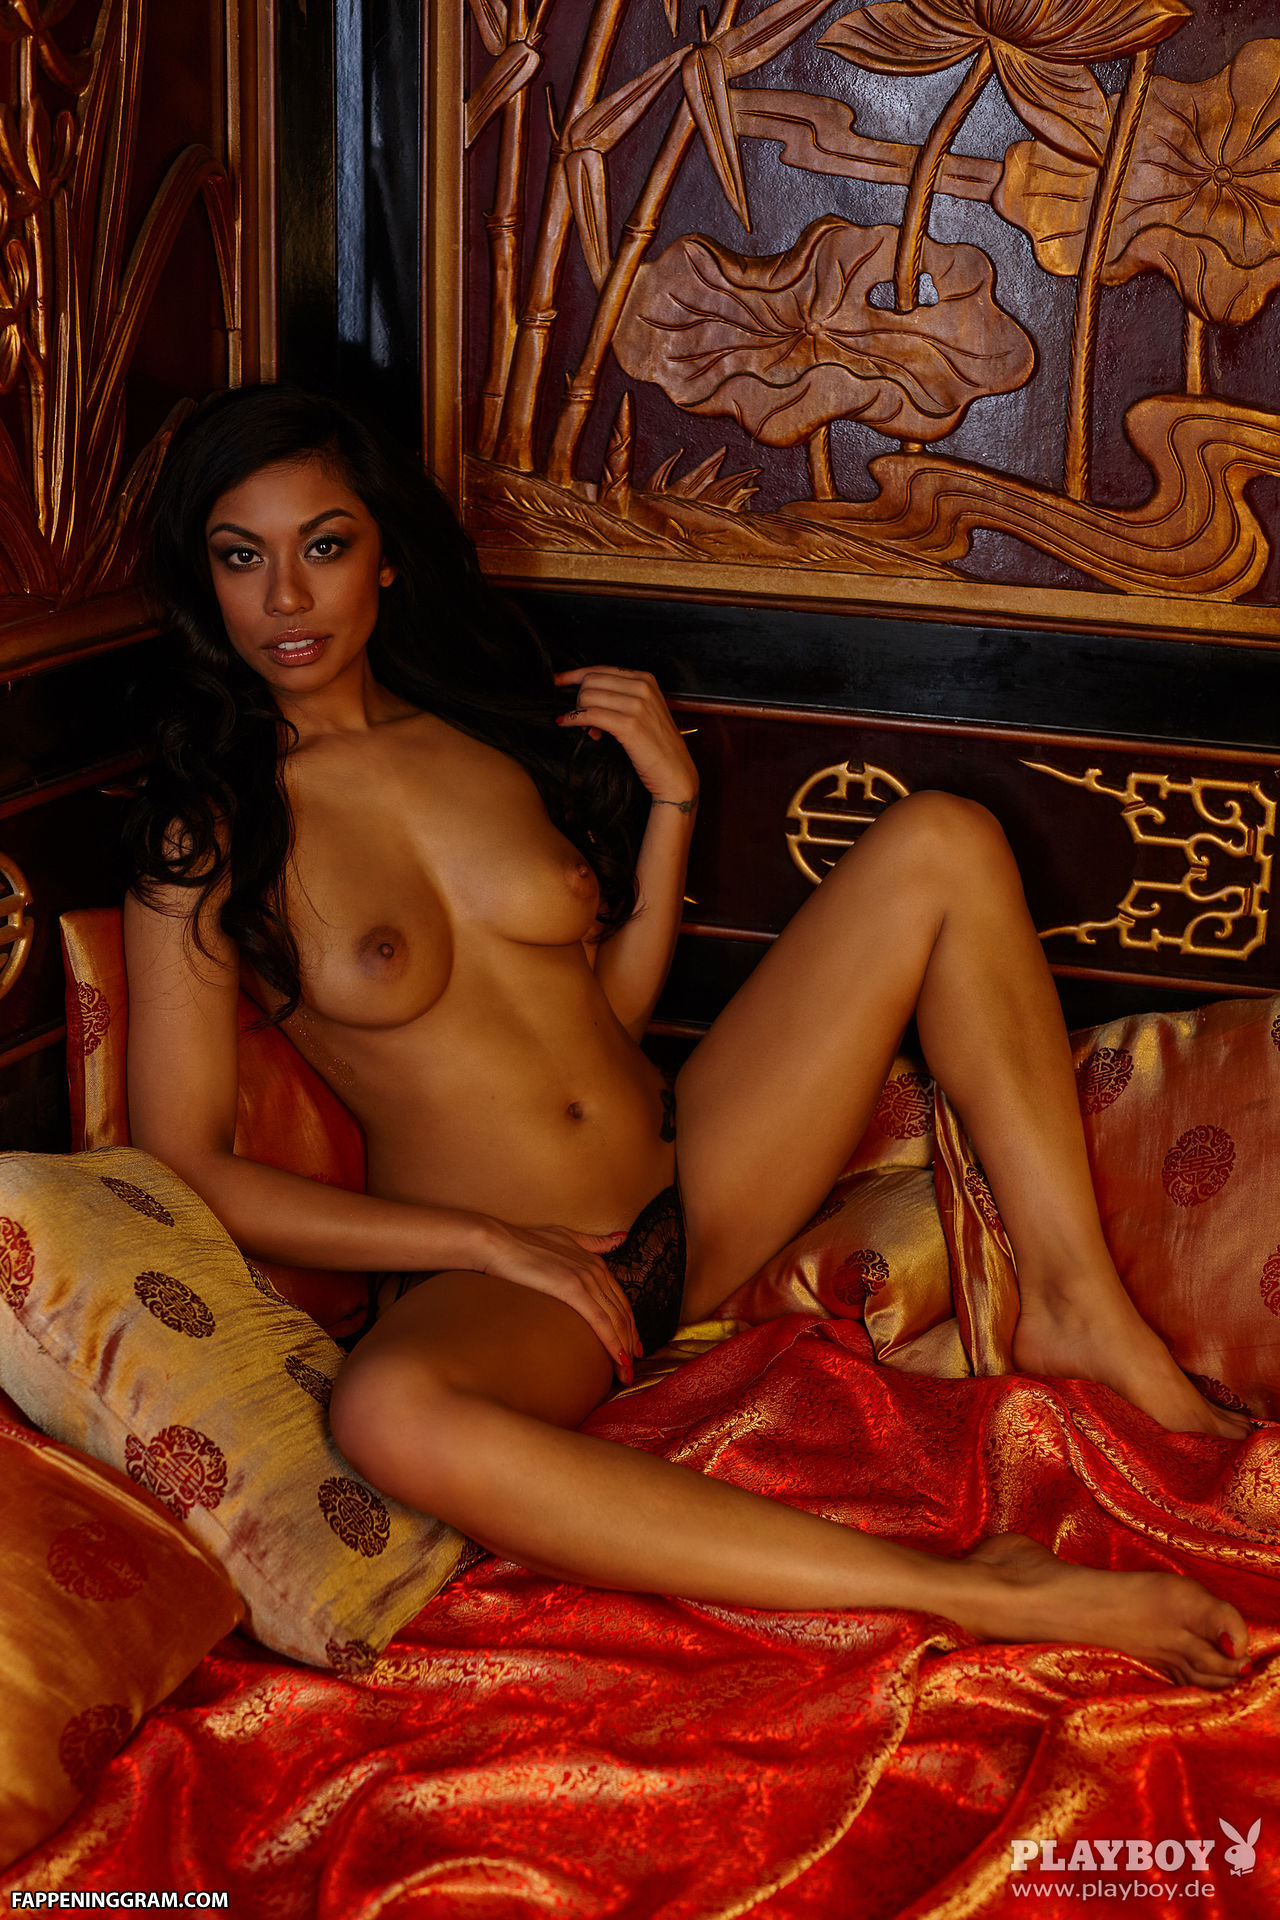 Search results for fhm filipina freelance model photoshoot althea vega